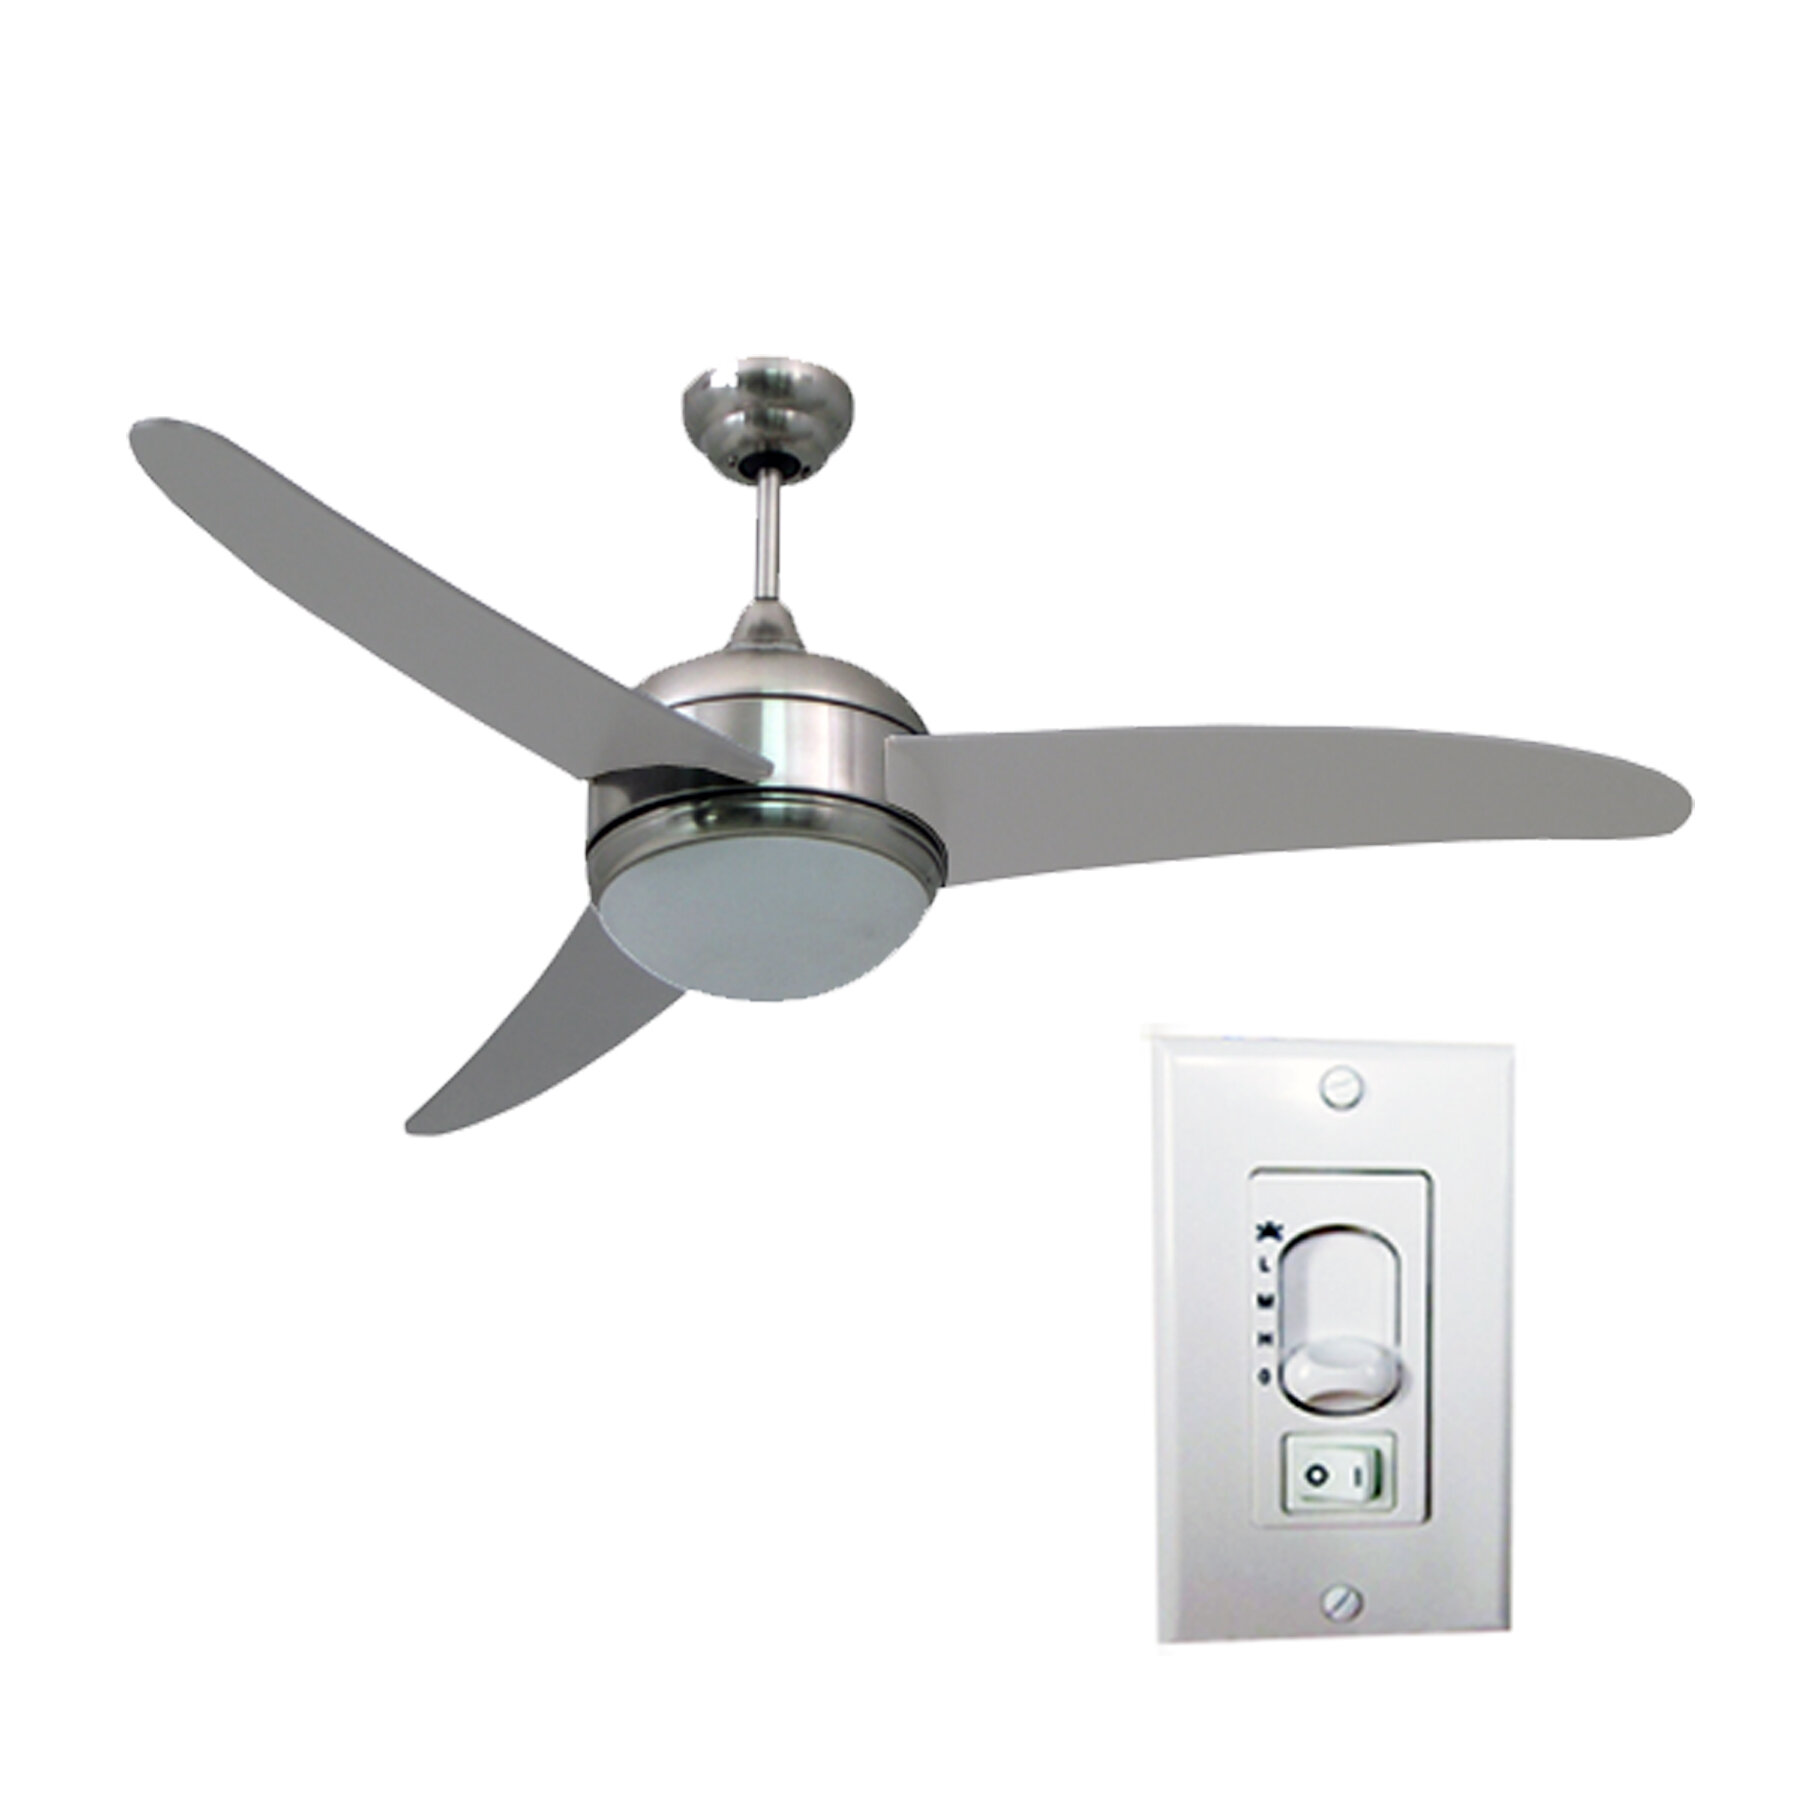 Homeselects international 52 contempo 3 blade ceiling fan reviews homeselects international 52 contempo 3 blade ceiling fan reviews wayfair aloadofball Choice Image